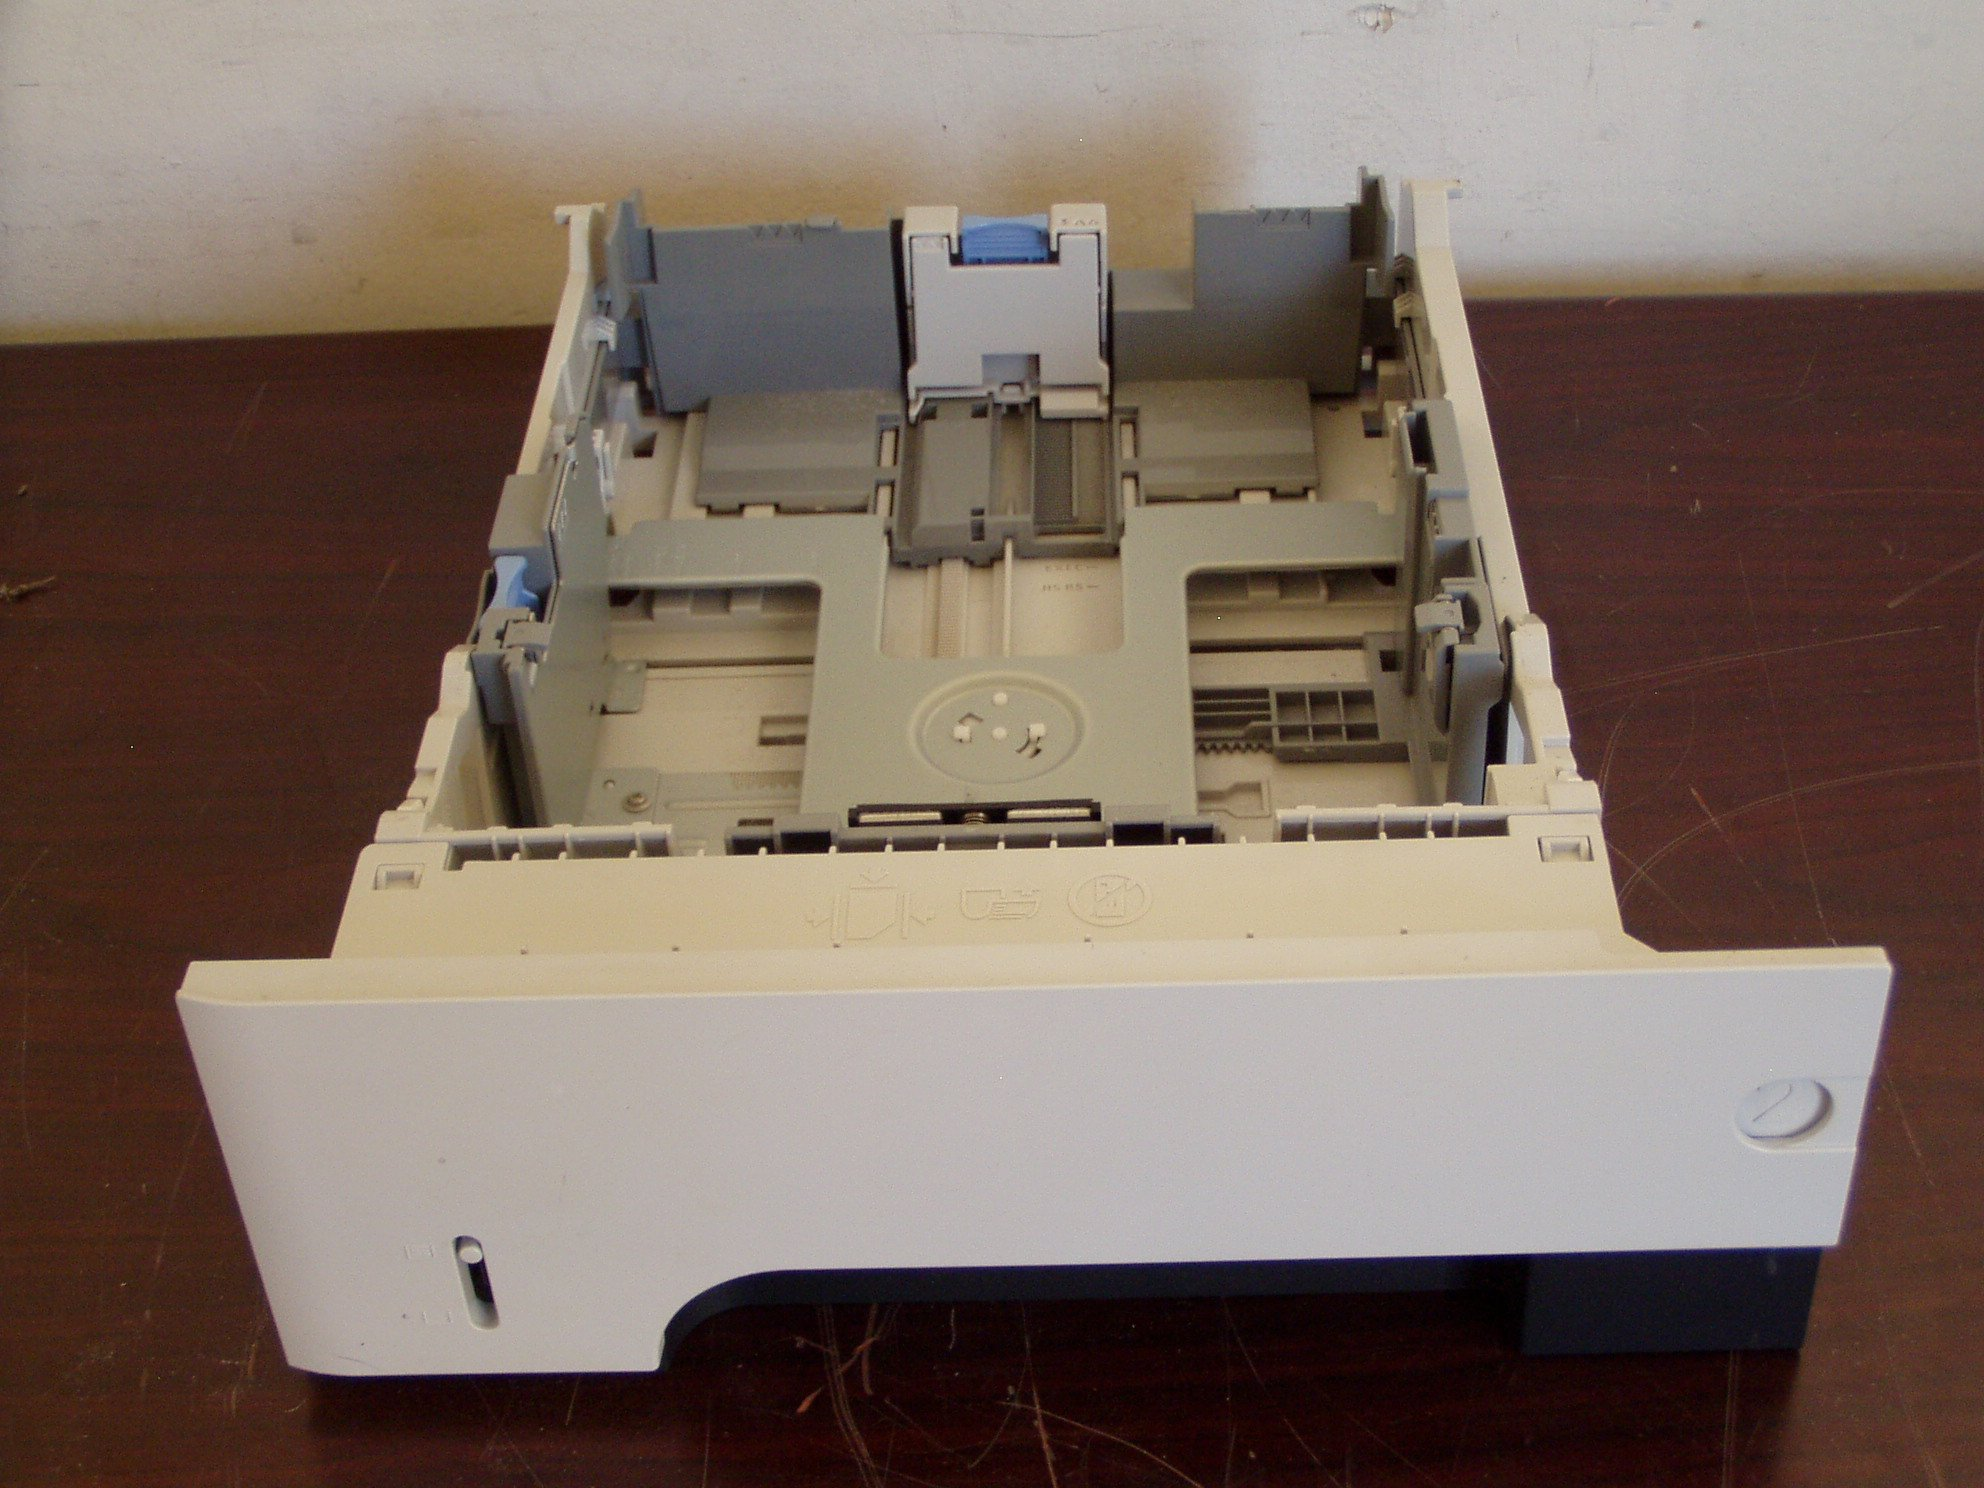 HP RM1-6279 500 Sheet Paper Tray Cassette For HP P3015, M525, M521 Printers by HP (Image #1)